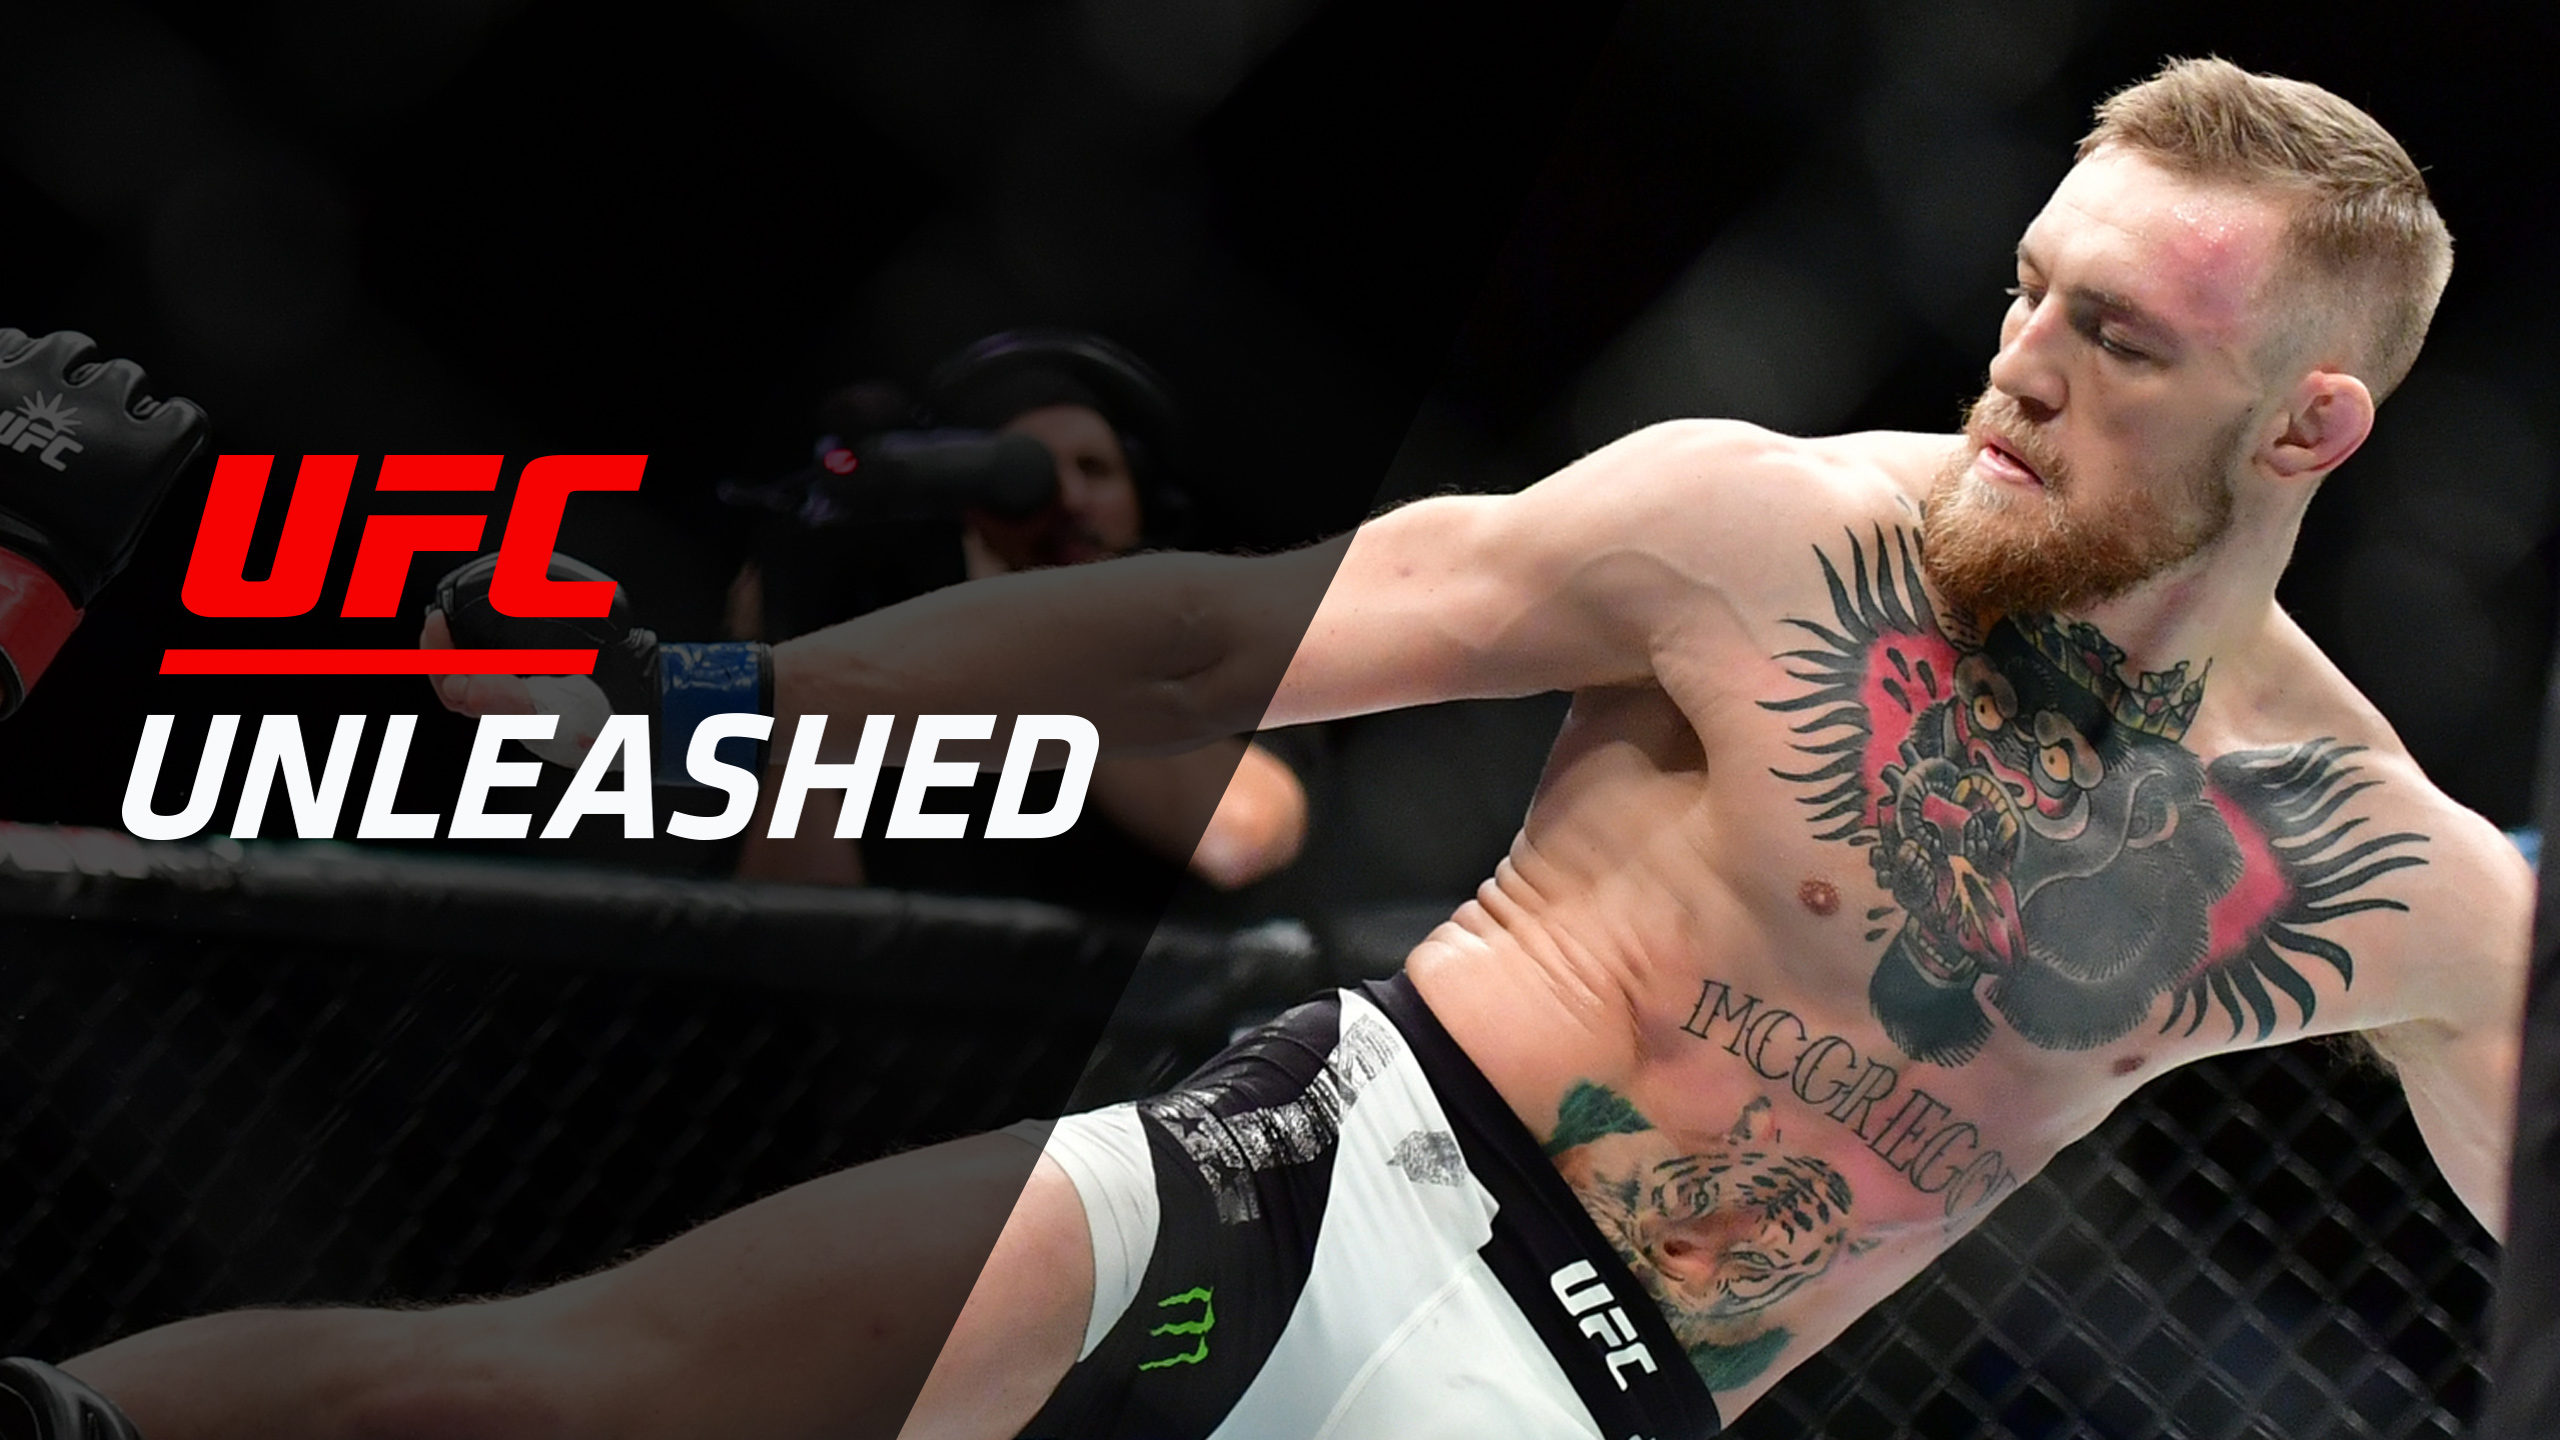 UFC Unleashed: Alvarez vs. McGregor